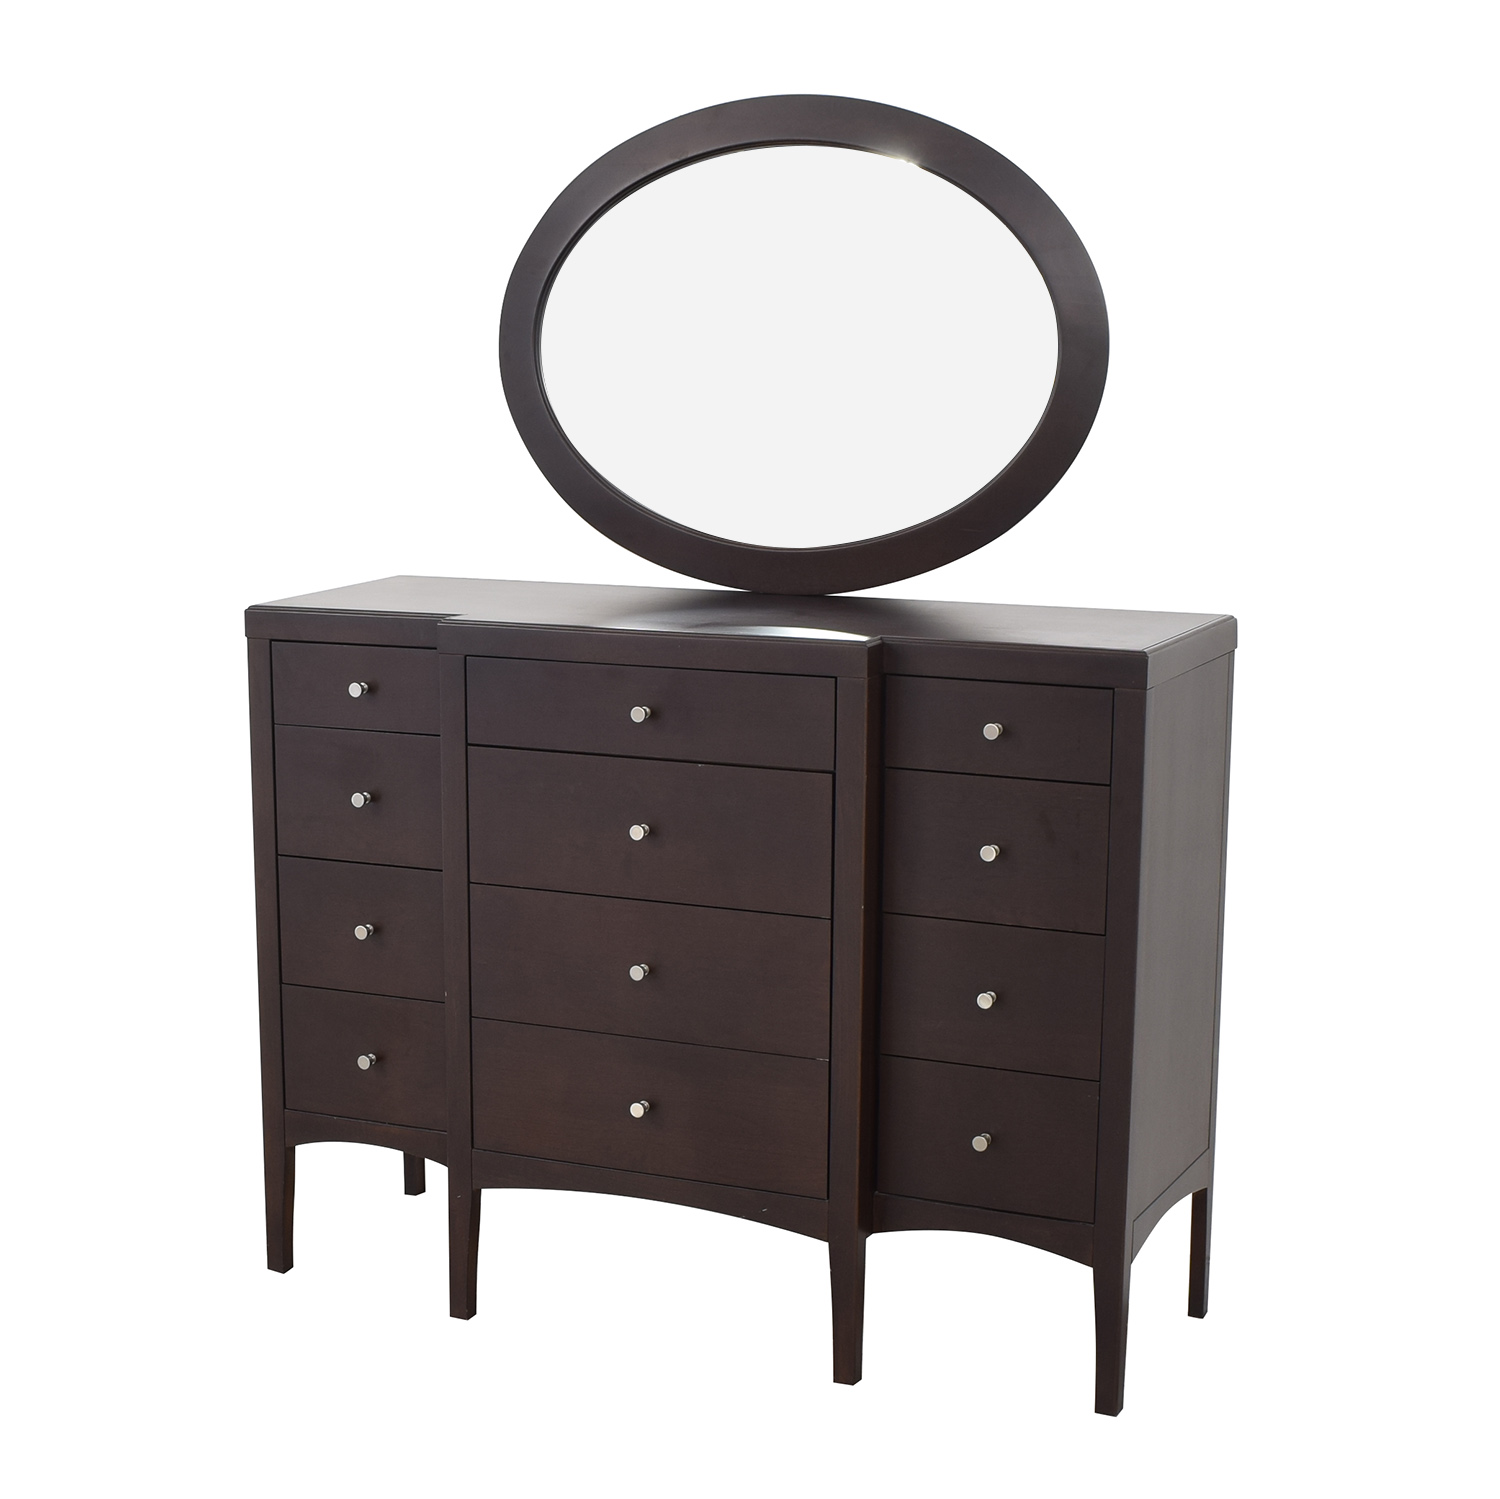 Macy's Macy's Chest of Drawers and Mirror nyc